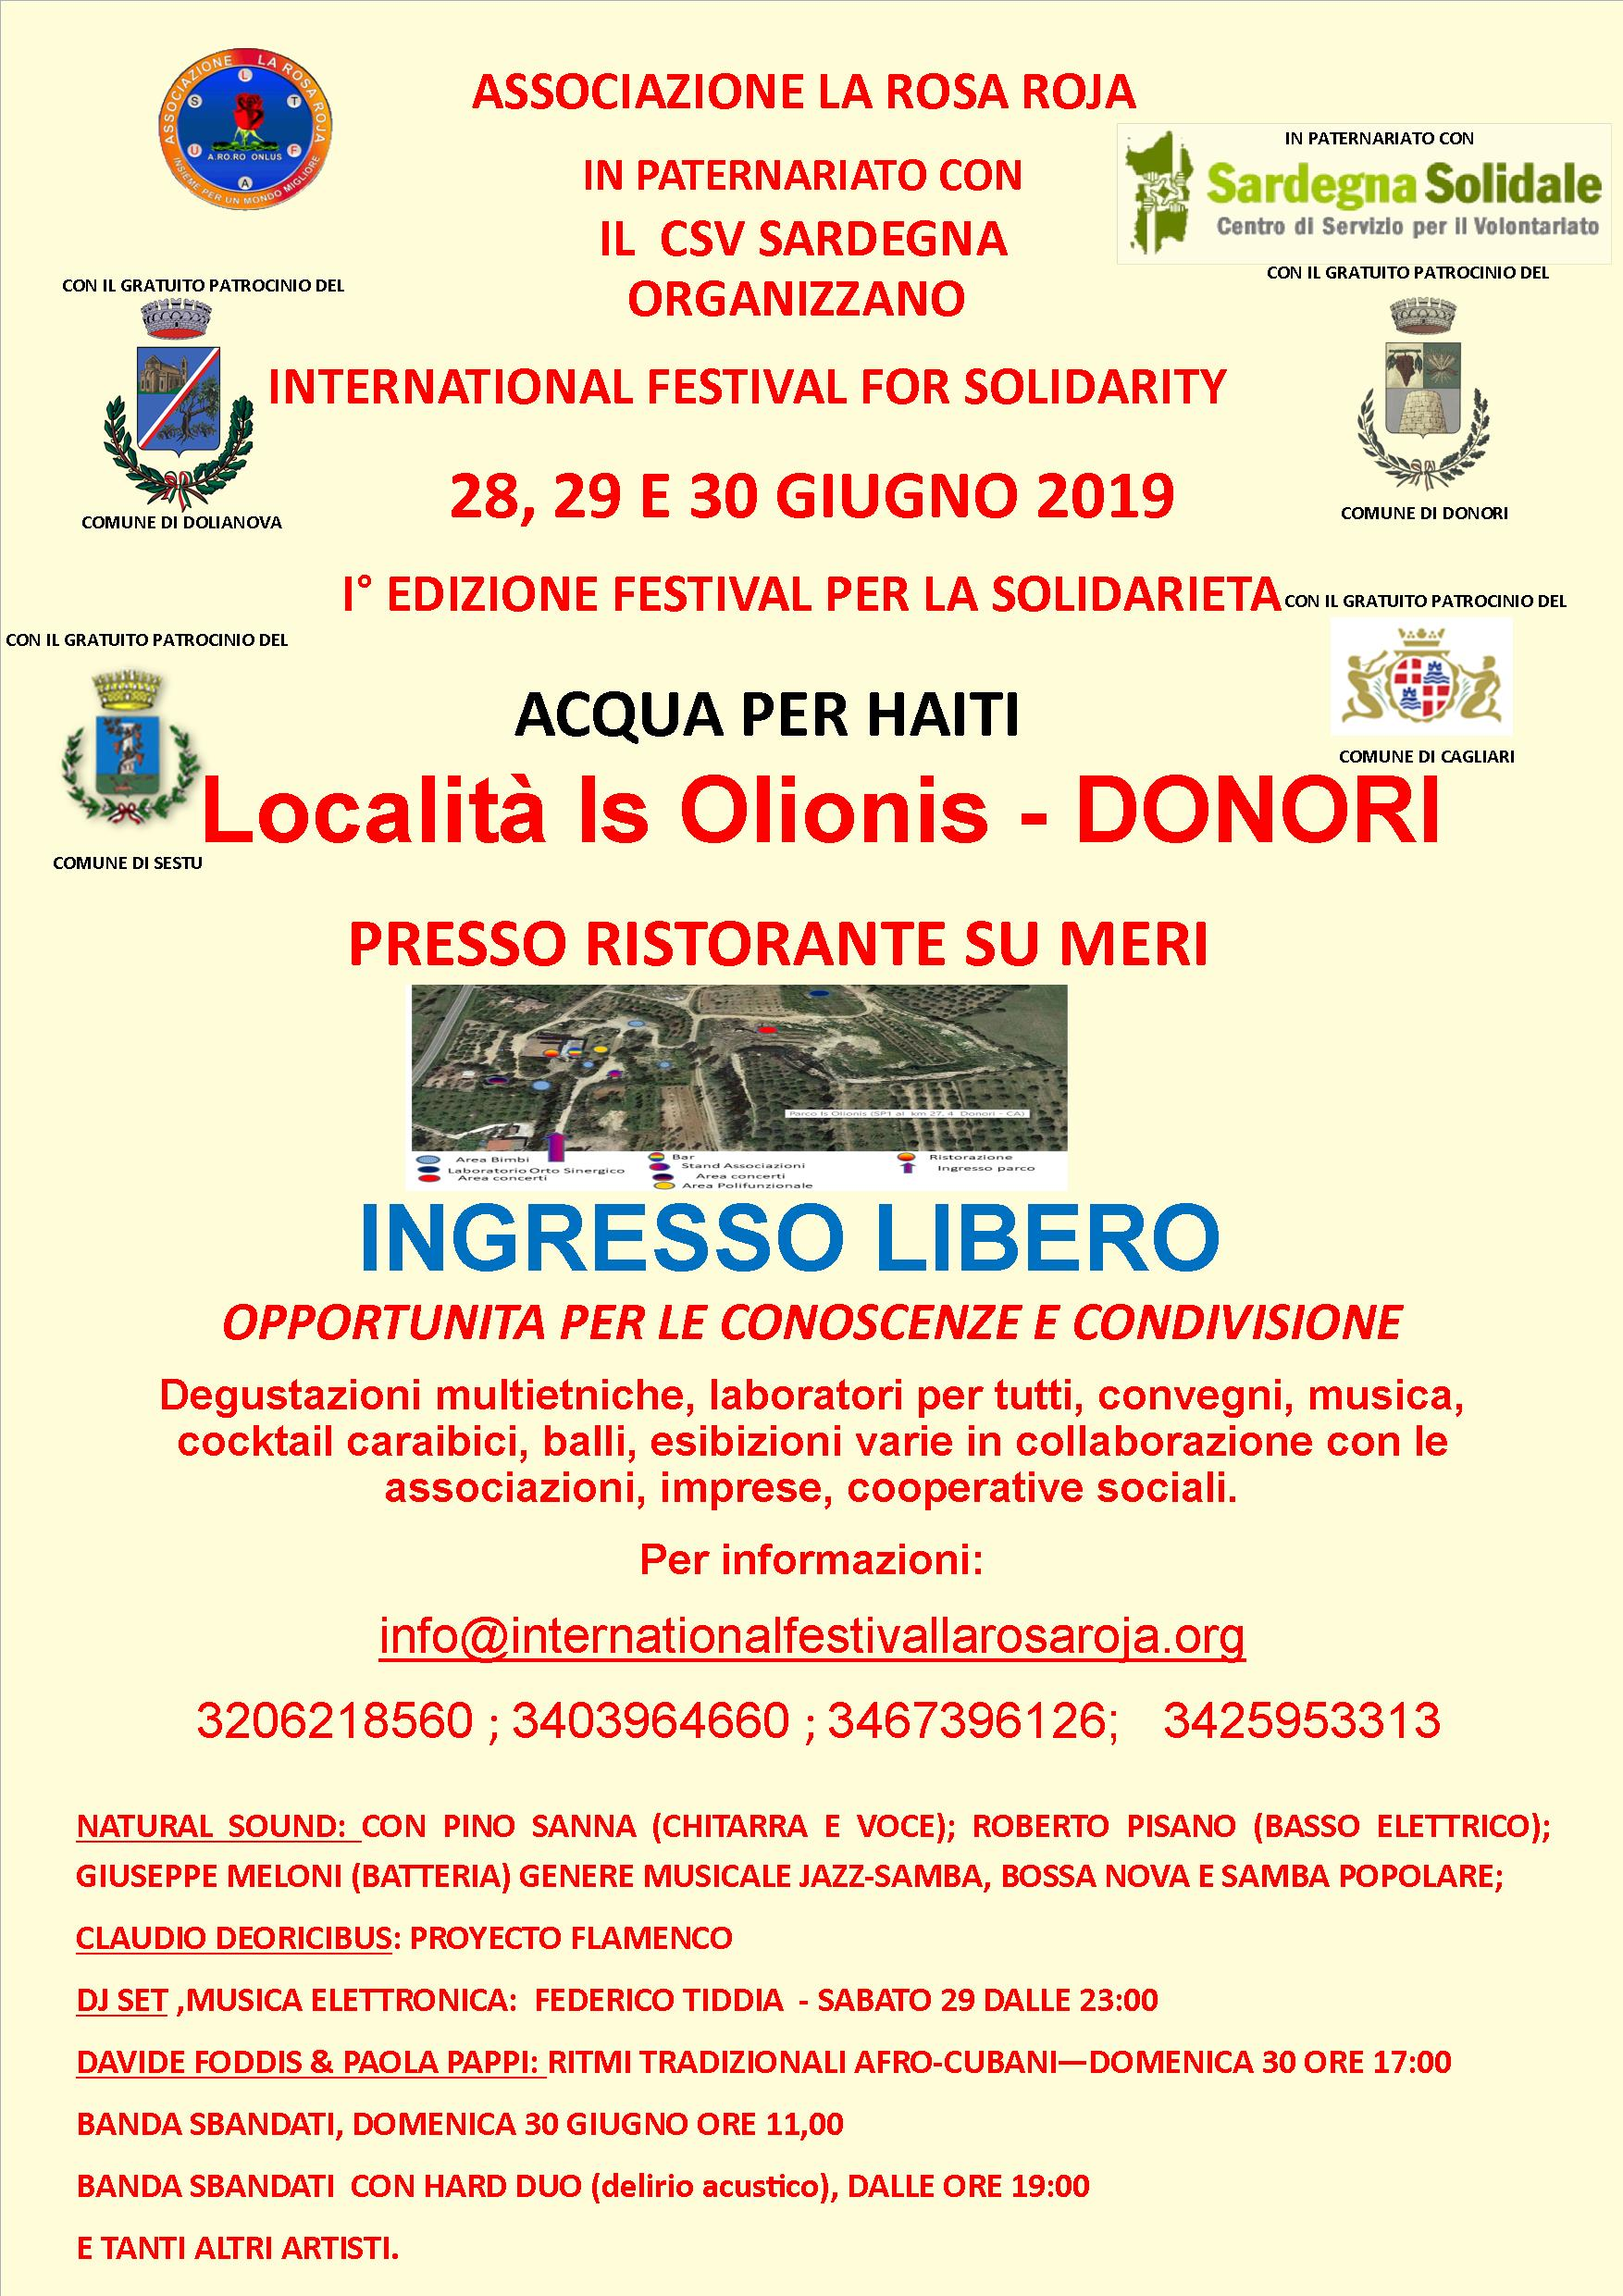 28-29-30 GIUGNO 2019_INTERNATIONAL FESTIVAL FOR SOLIDARITY – ACQUA PER HAITI